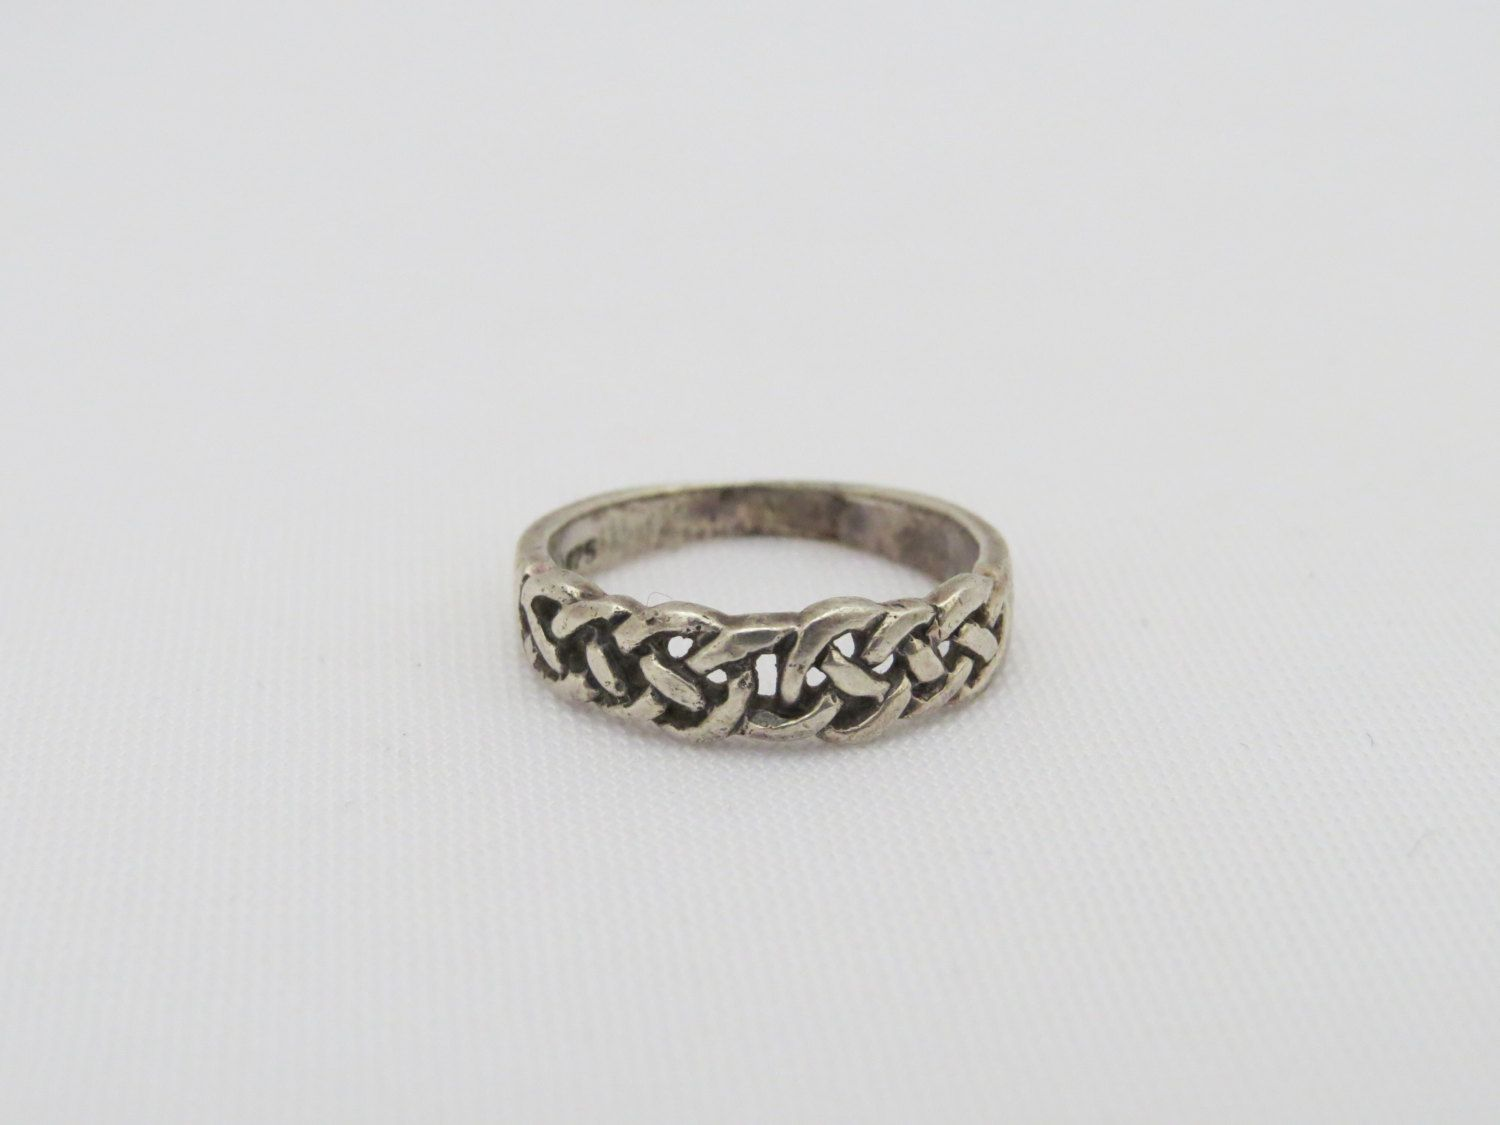 Vintage Sterling Silver Twisted Celtic Band Ring Size 6 by wandajewelry2013 on Etsy